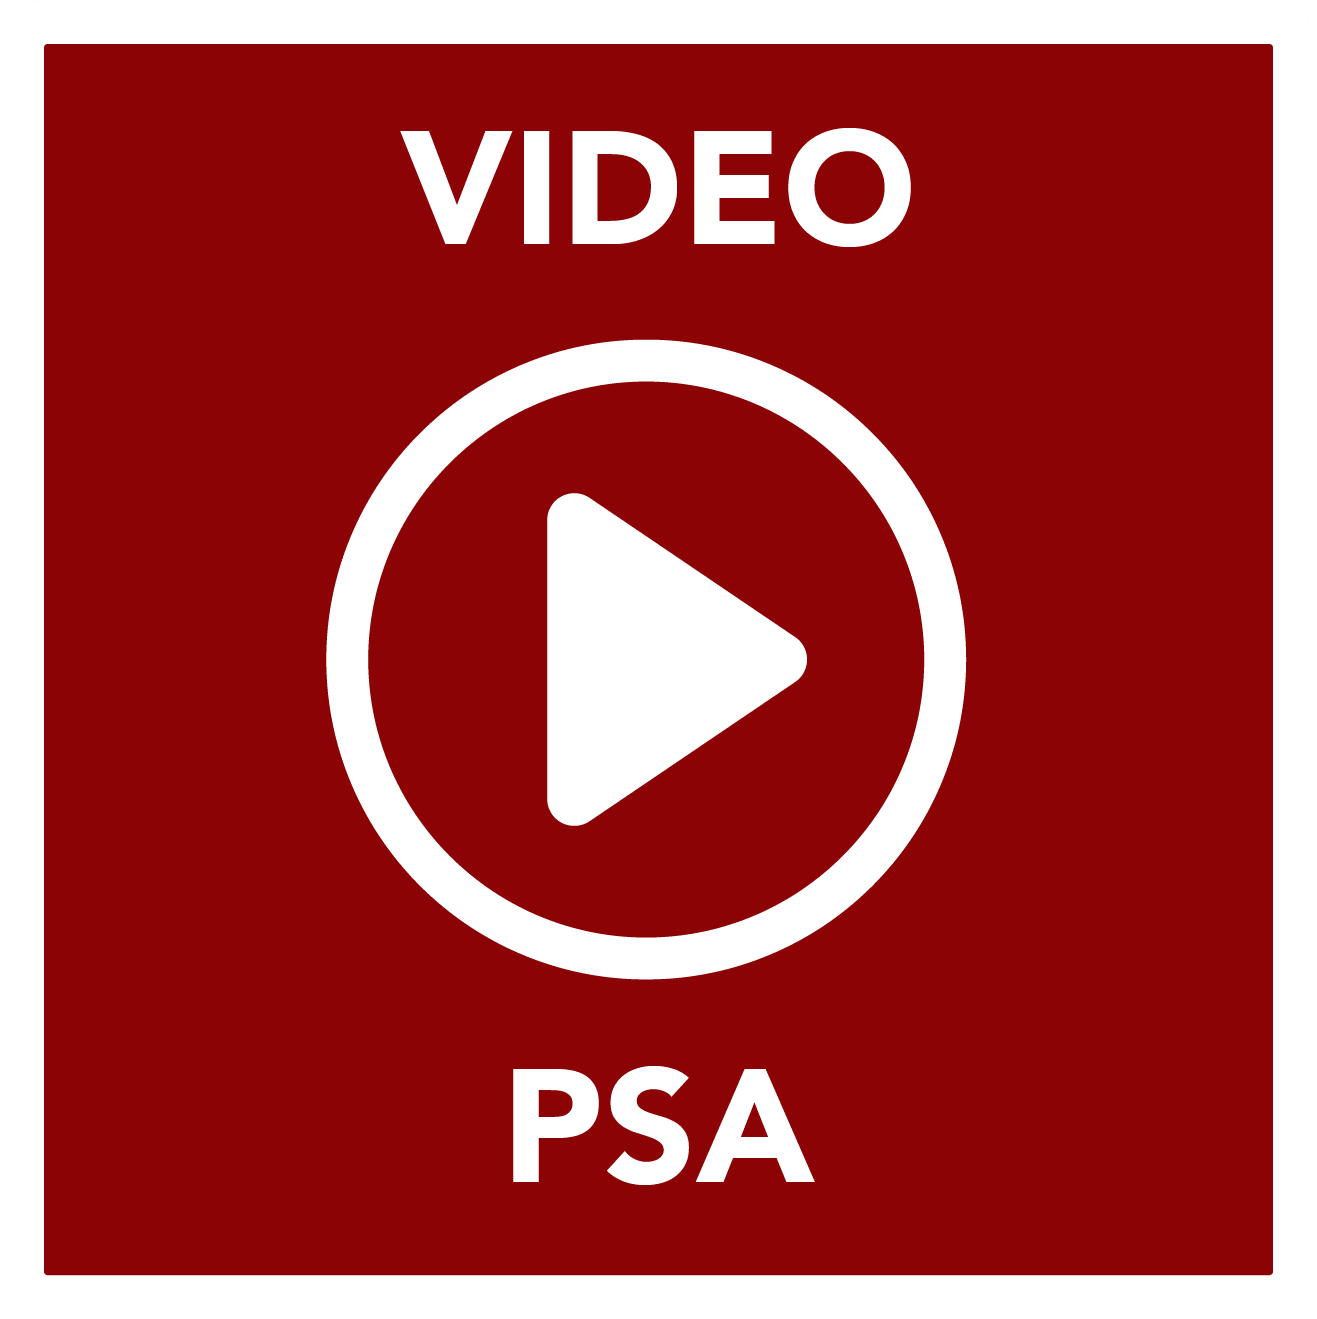 Video PSA - Button